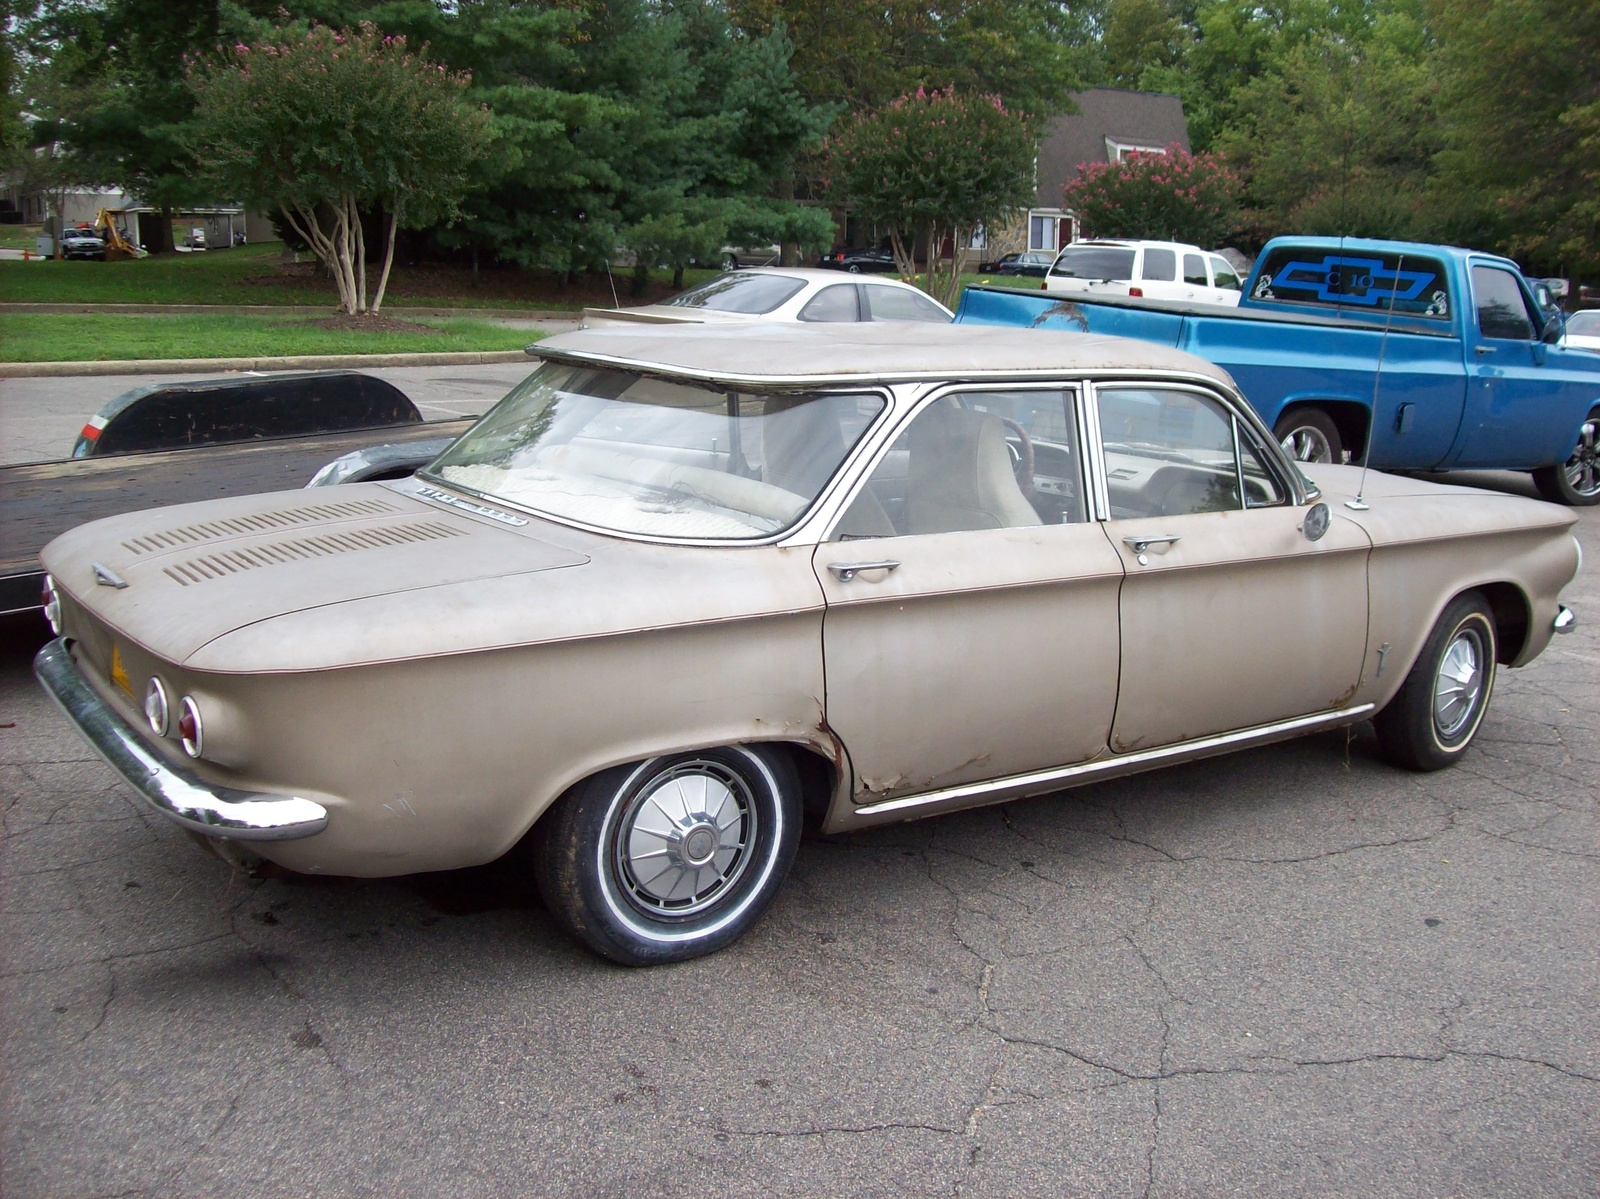 1961 Chevrolet Corvair on chevy power window motor replacement